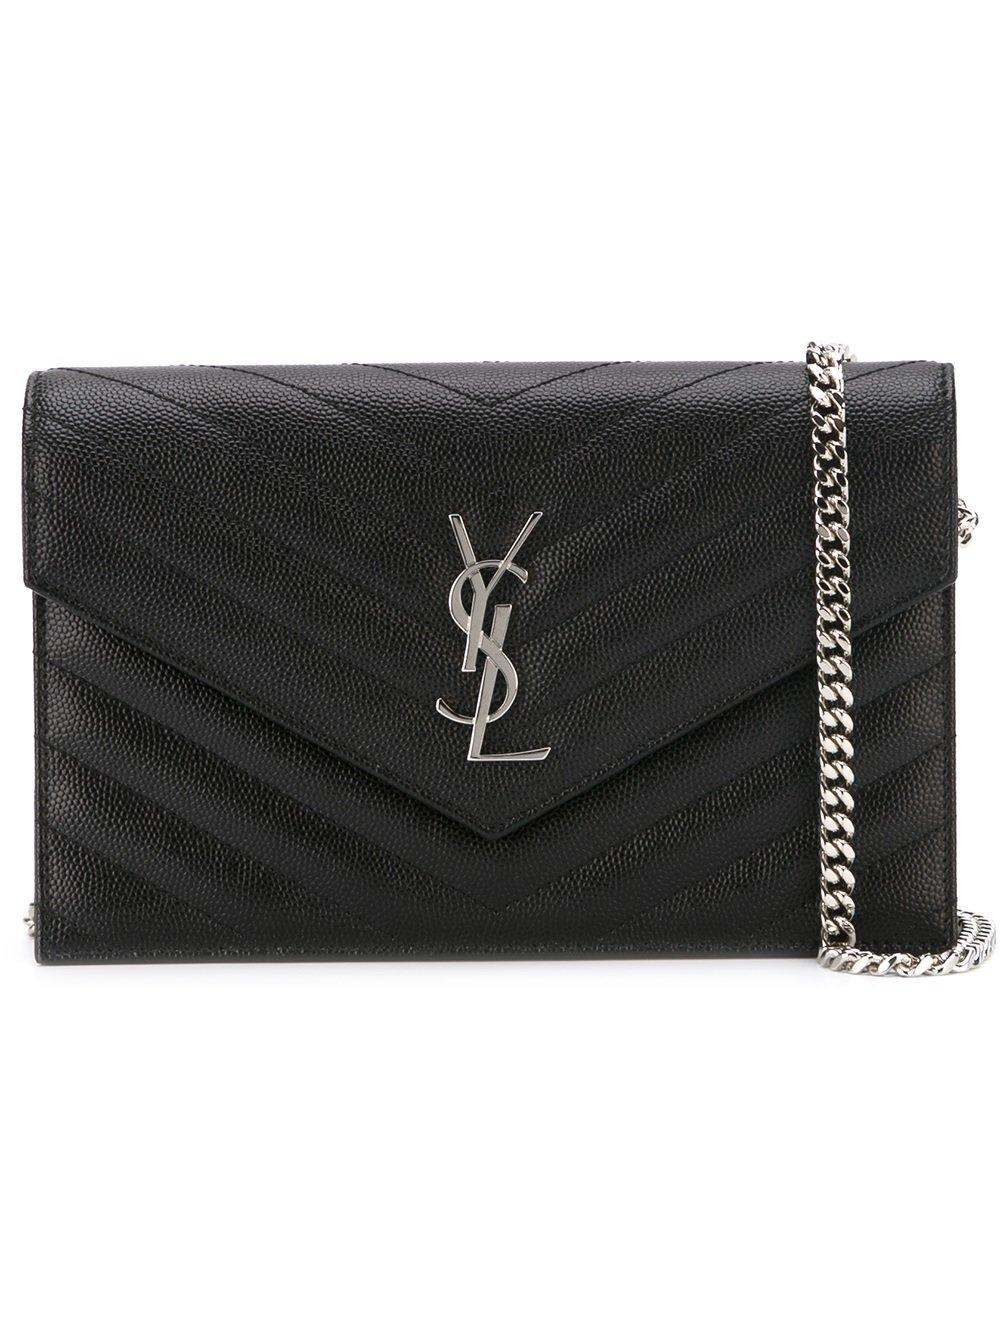 Saint Laurent Chain Wallet Ysl Monogram Quilted Envelope ...